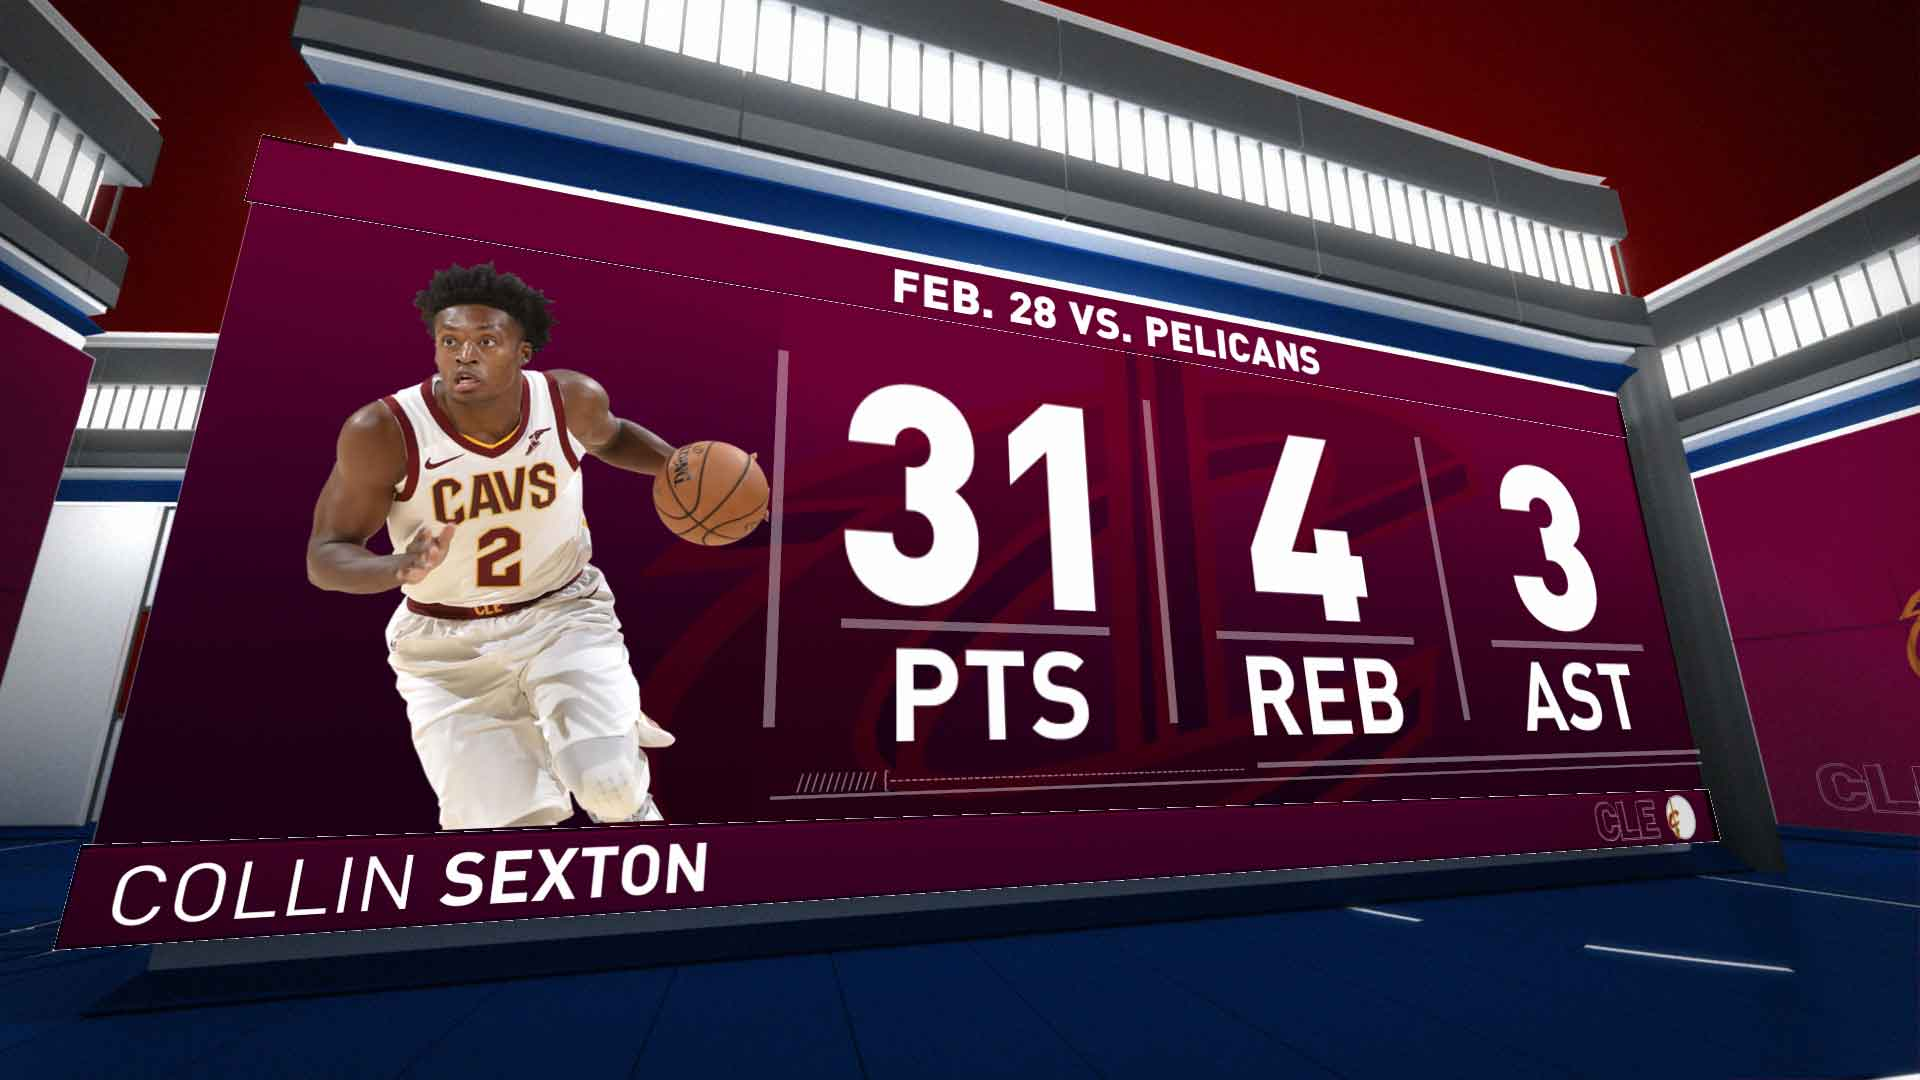 Highlights: Collin Sexton | Cavaliers vs. Pelicans